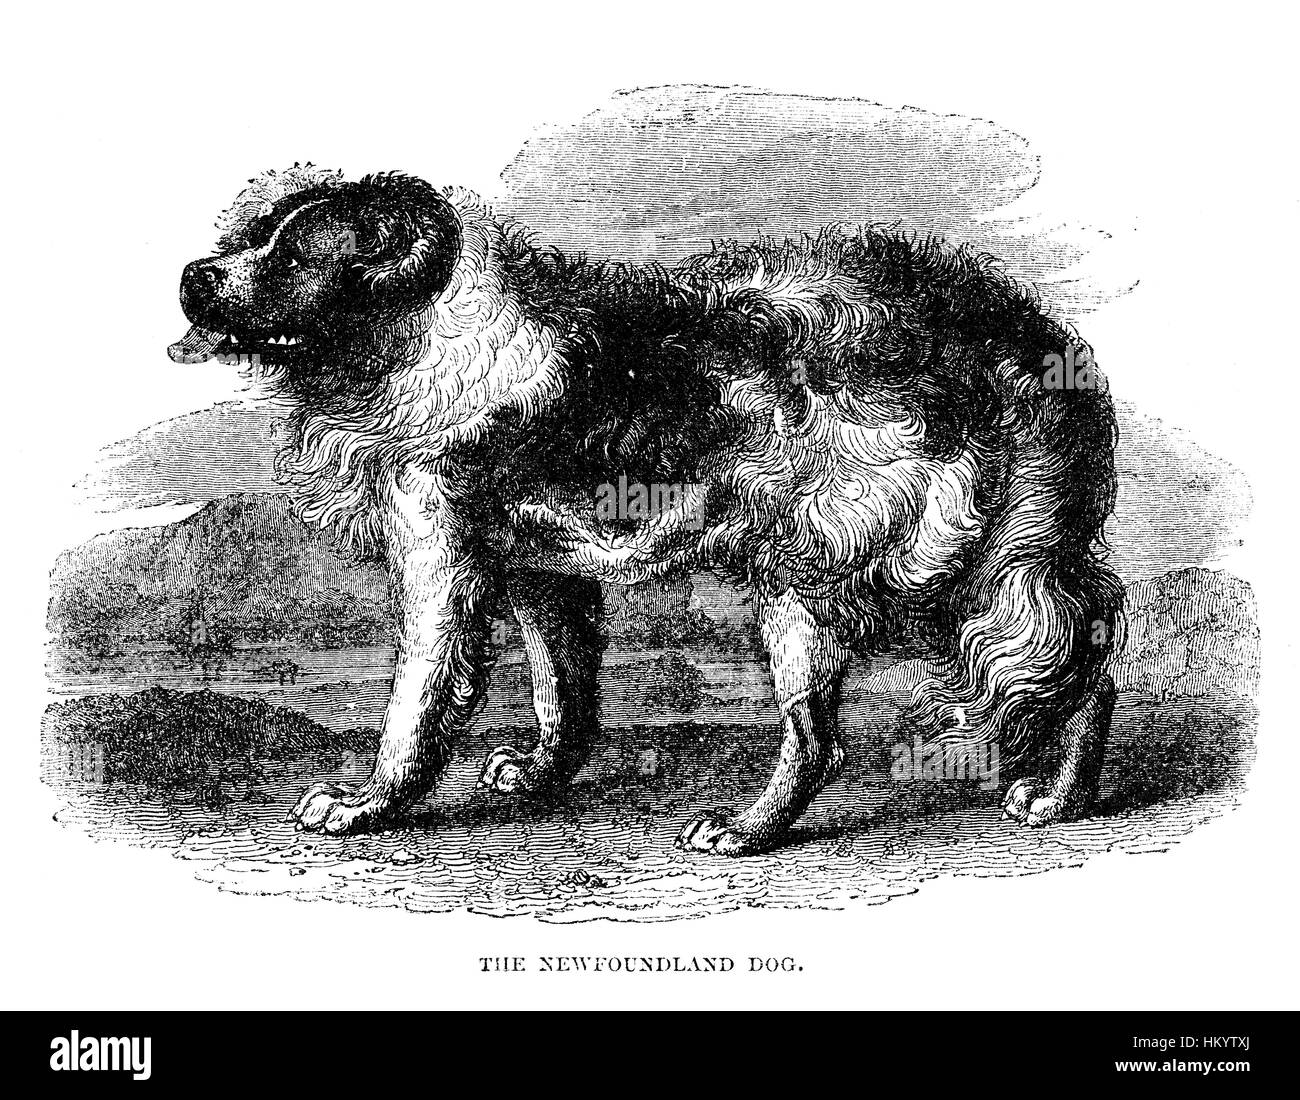 Newfoundland Dog. 19th century Engraving from 'Popular Natural History' published in 1866. - Stock Image